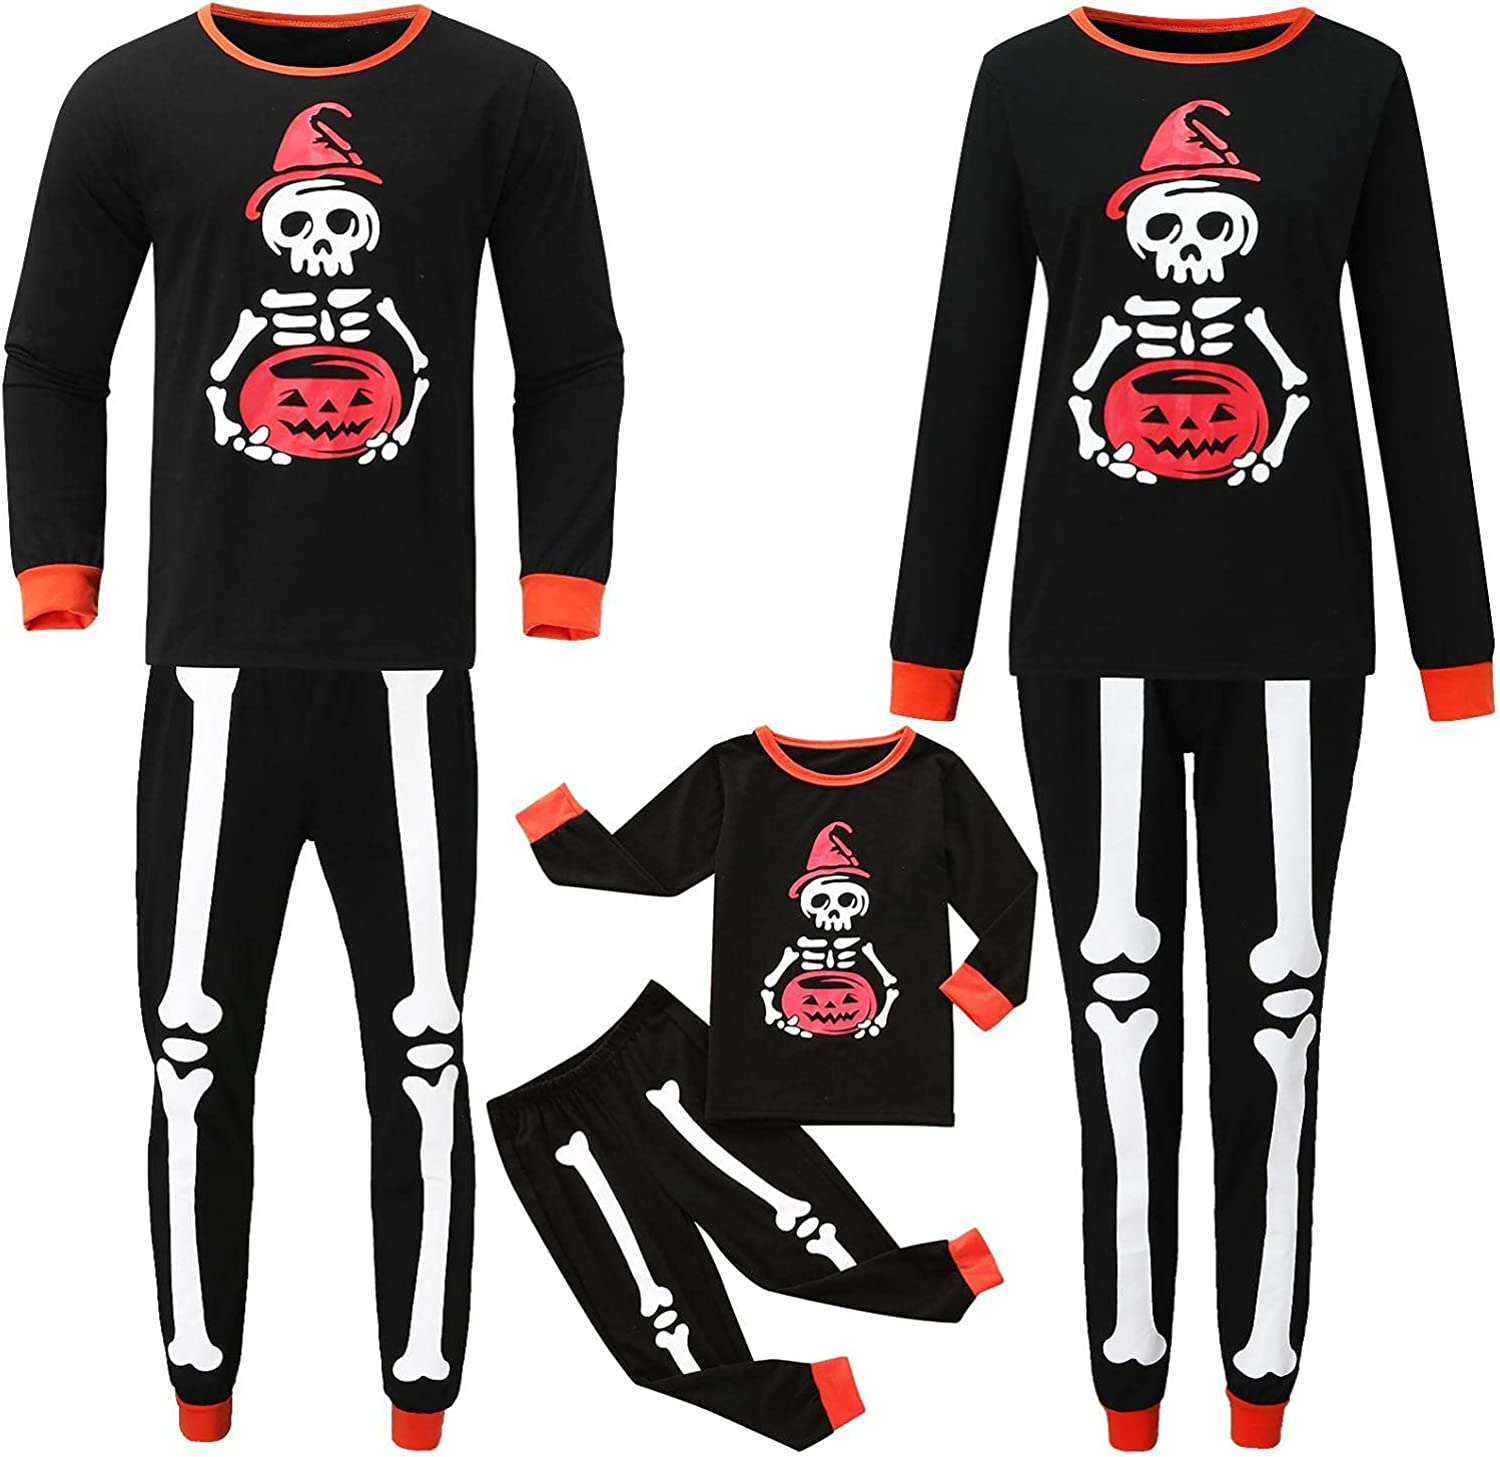 NIHOND Matching Family OFFicial shop Year-end annual account Pajamas Sets 2 PJ's Halloween Pie Holiday